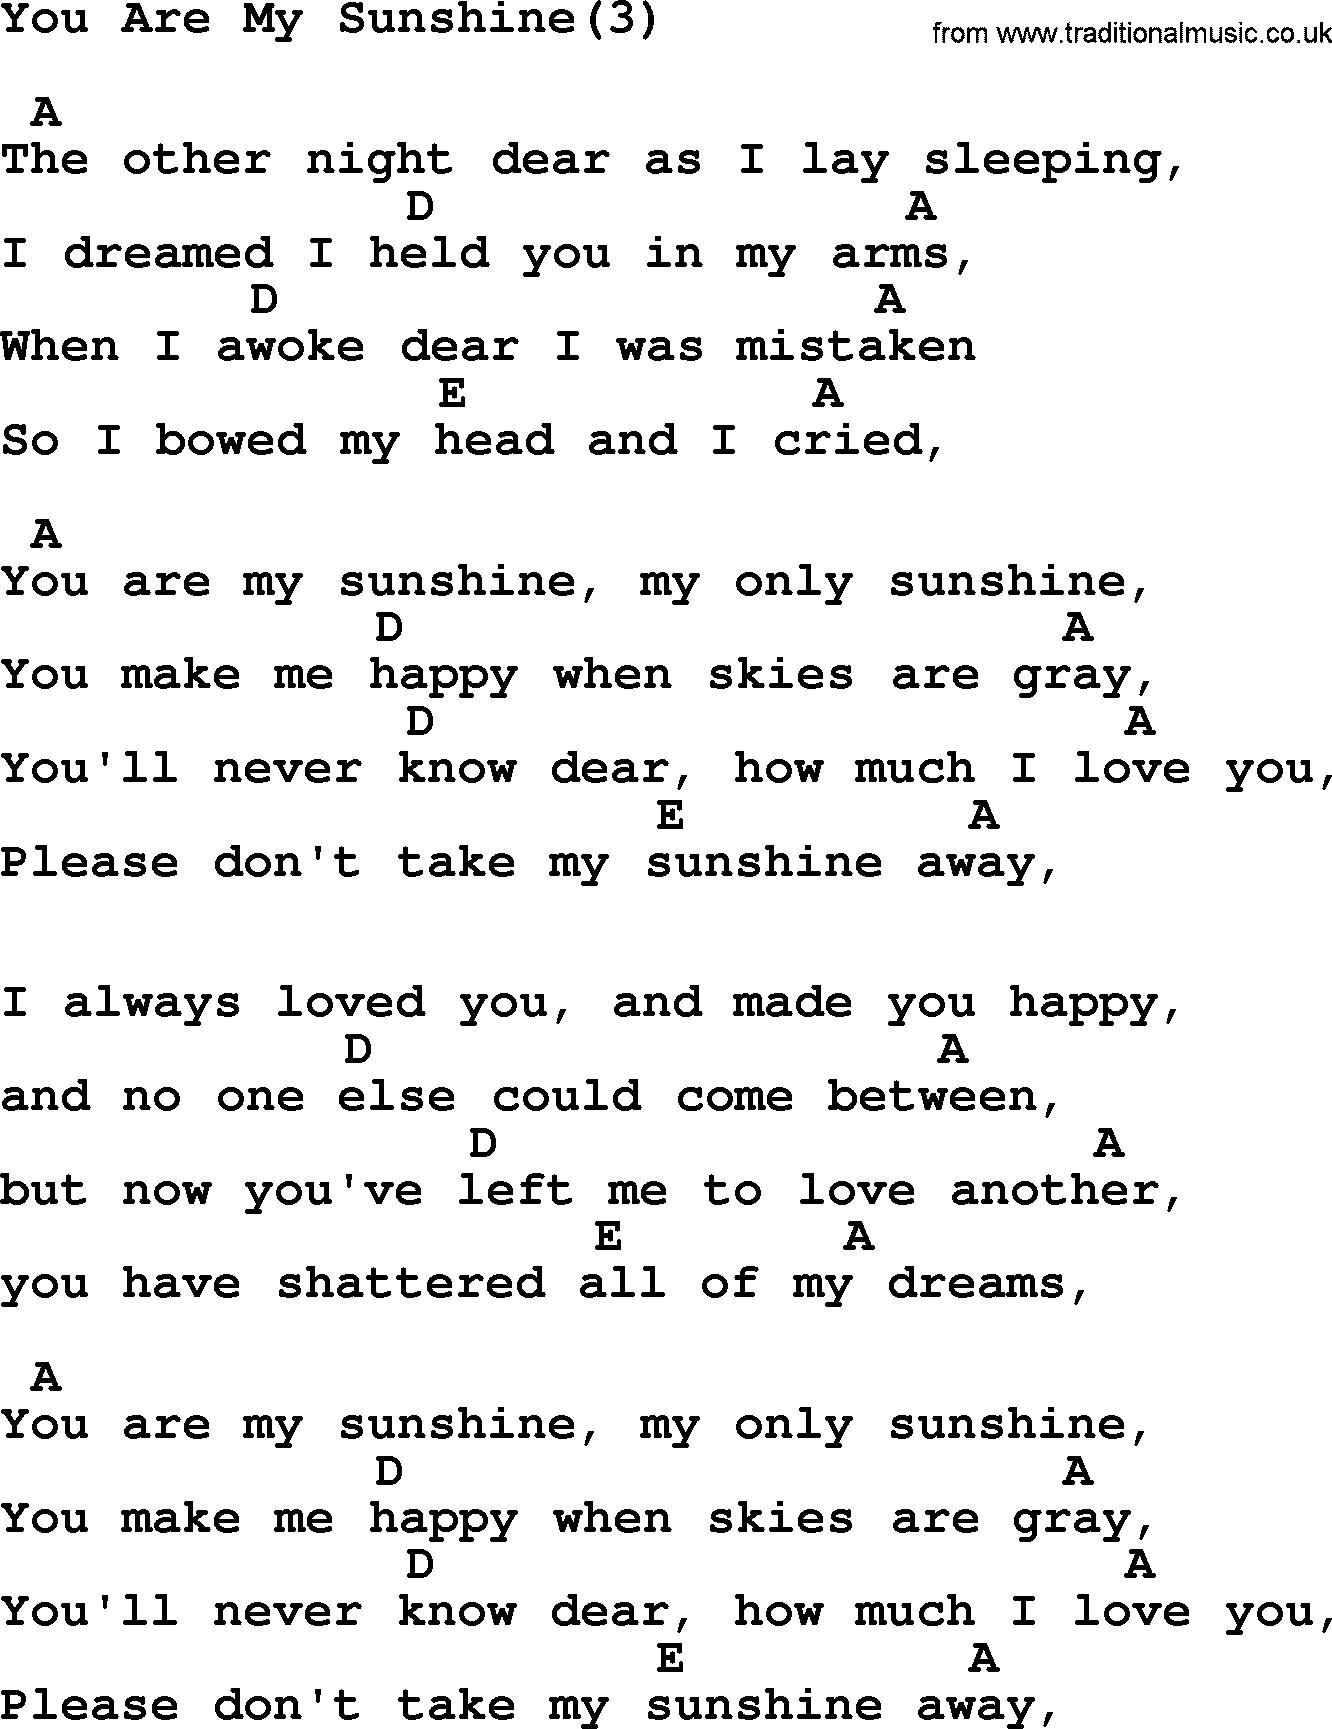 You Are My Sunshine Chords Johnny Cash Song You Are My Sunshine3 Lyrics And Chords